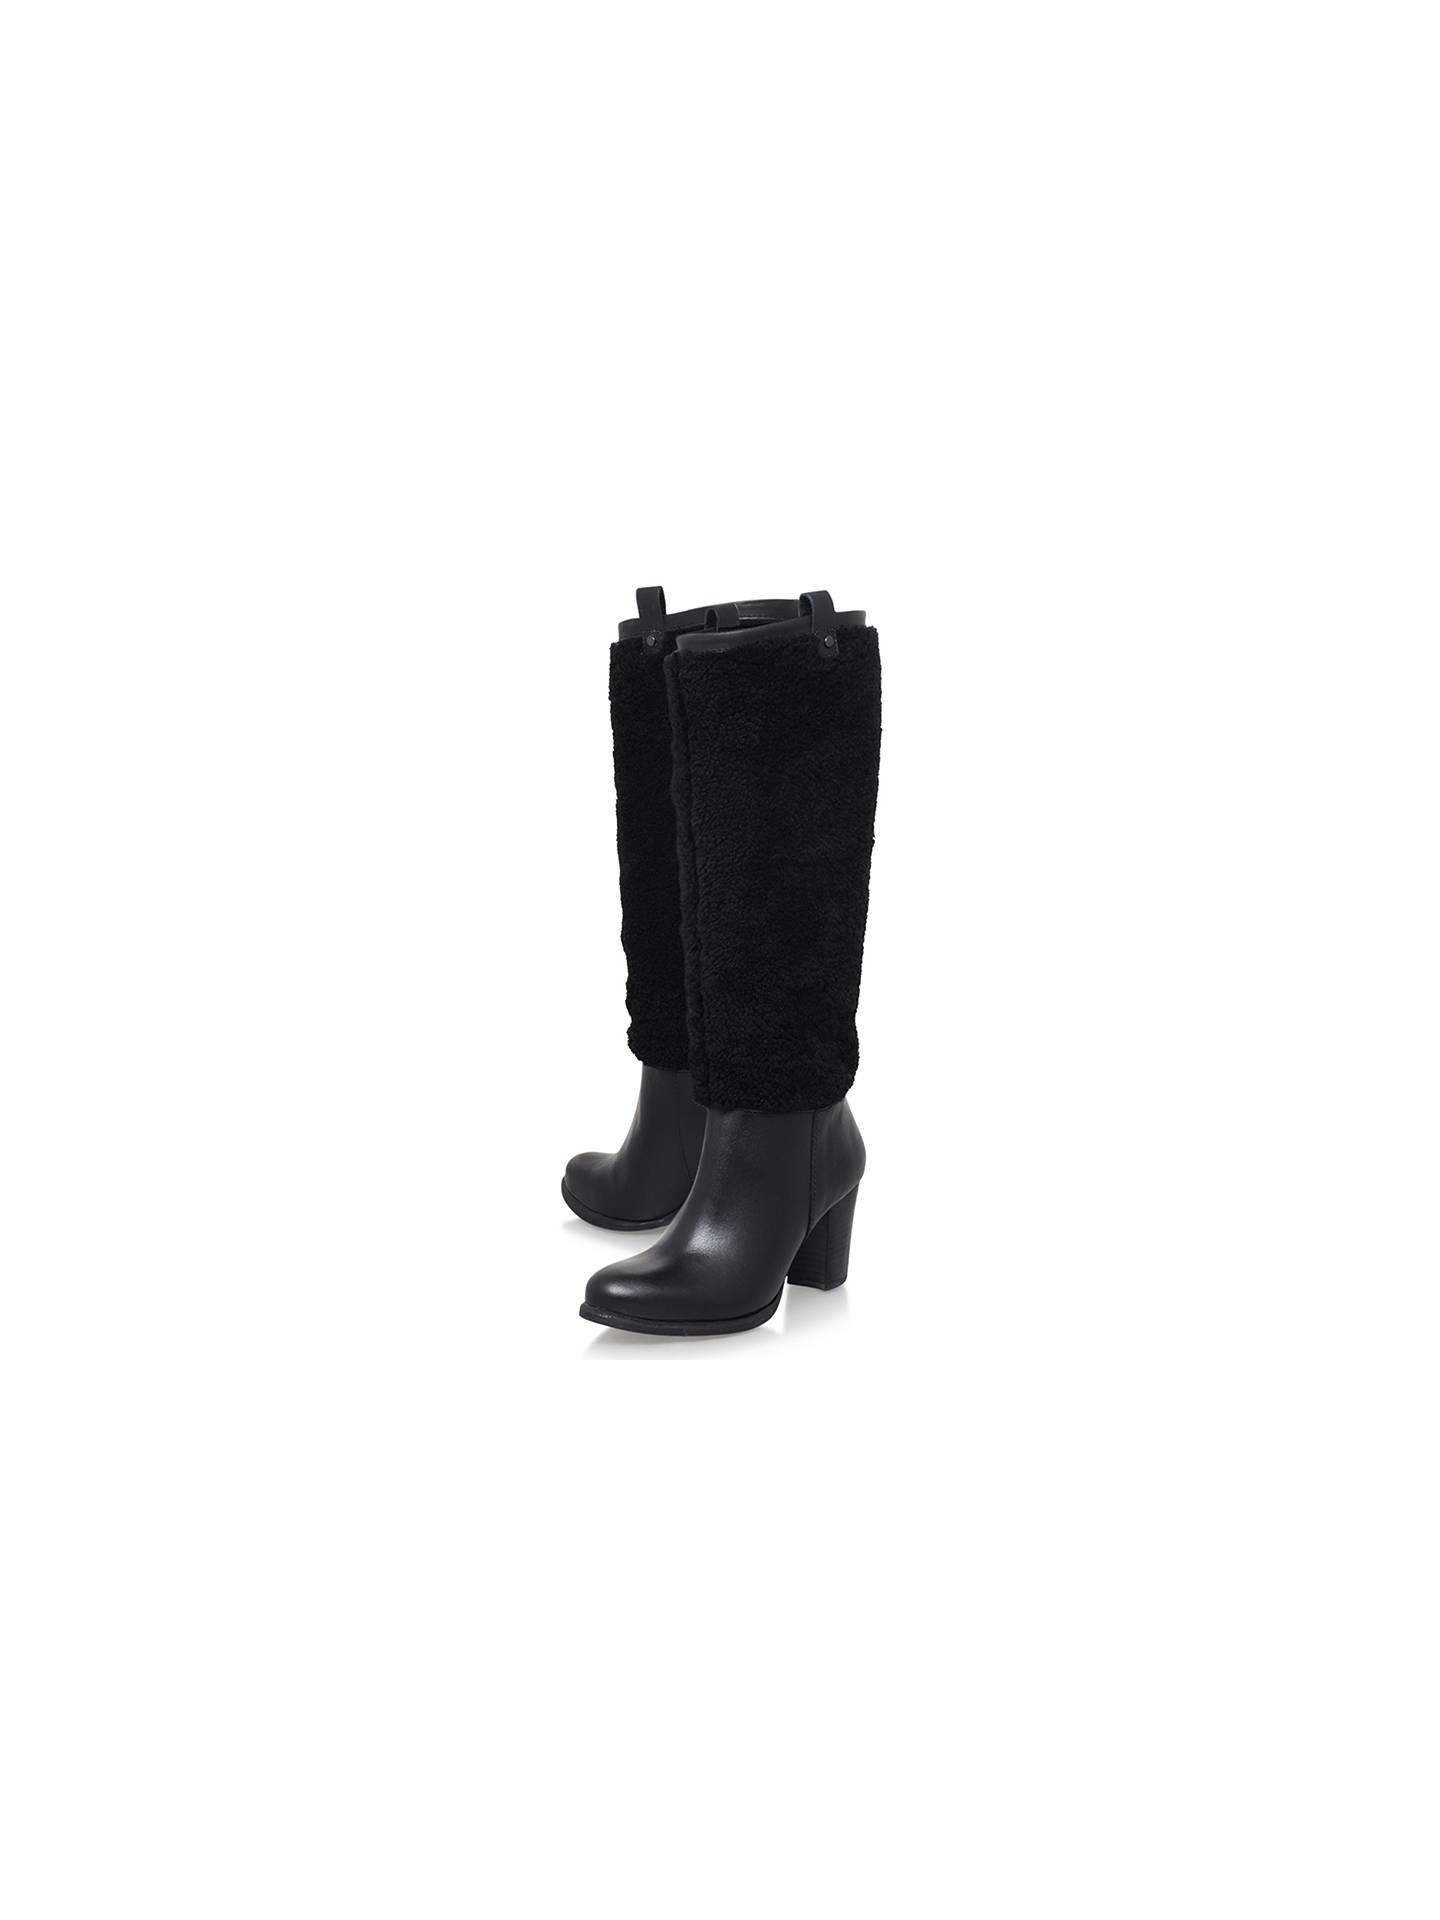 b20a1638c7 UGG Ava Exposed Fur Knee High Boots, Black at John Lewis & Partners